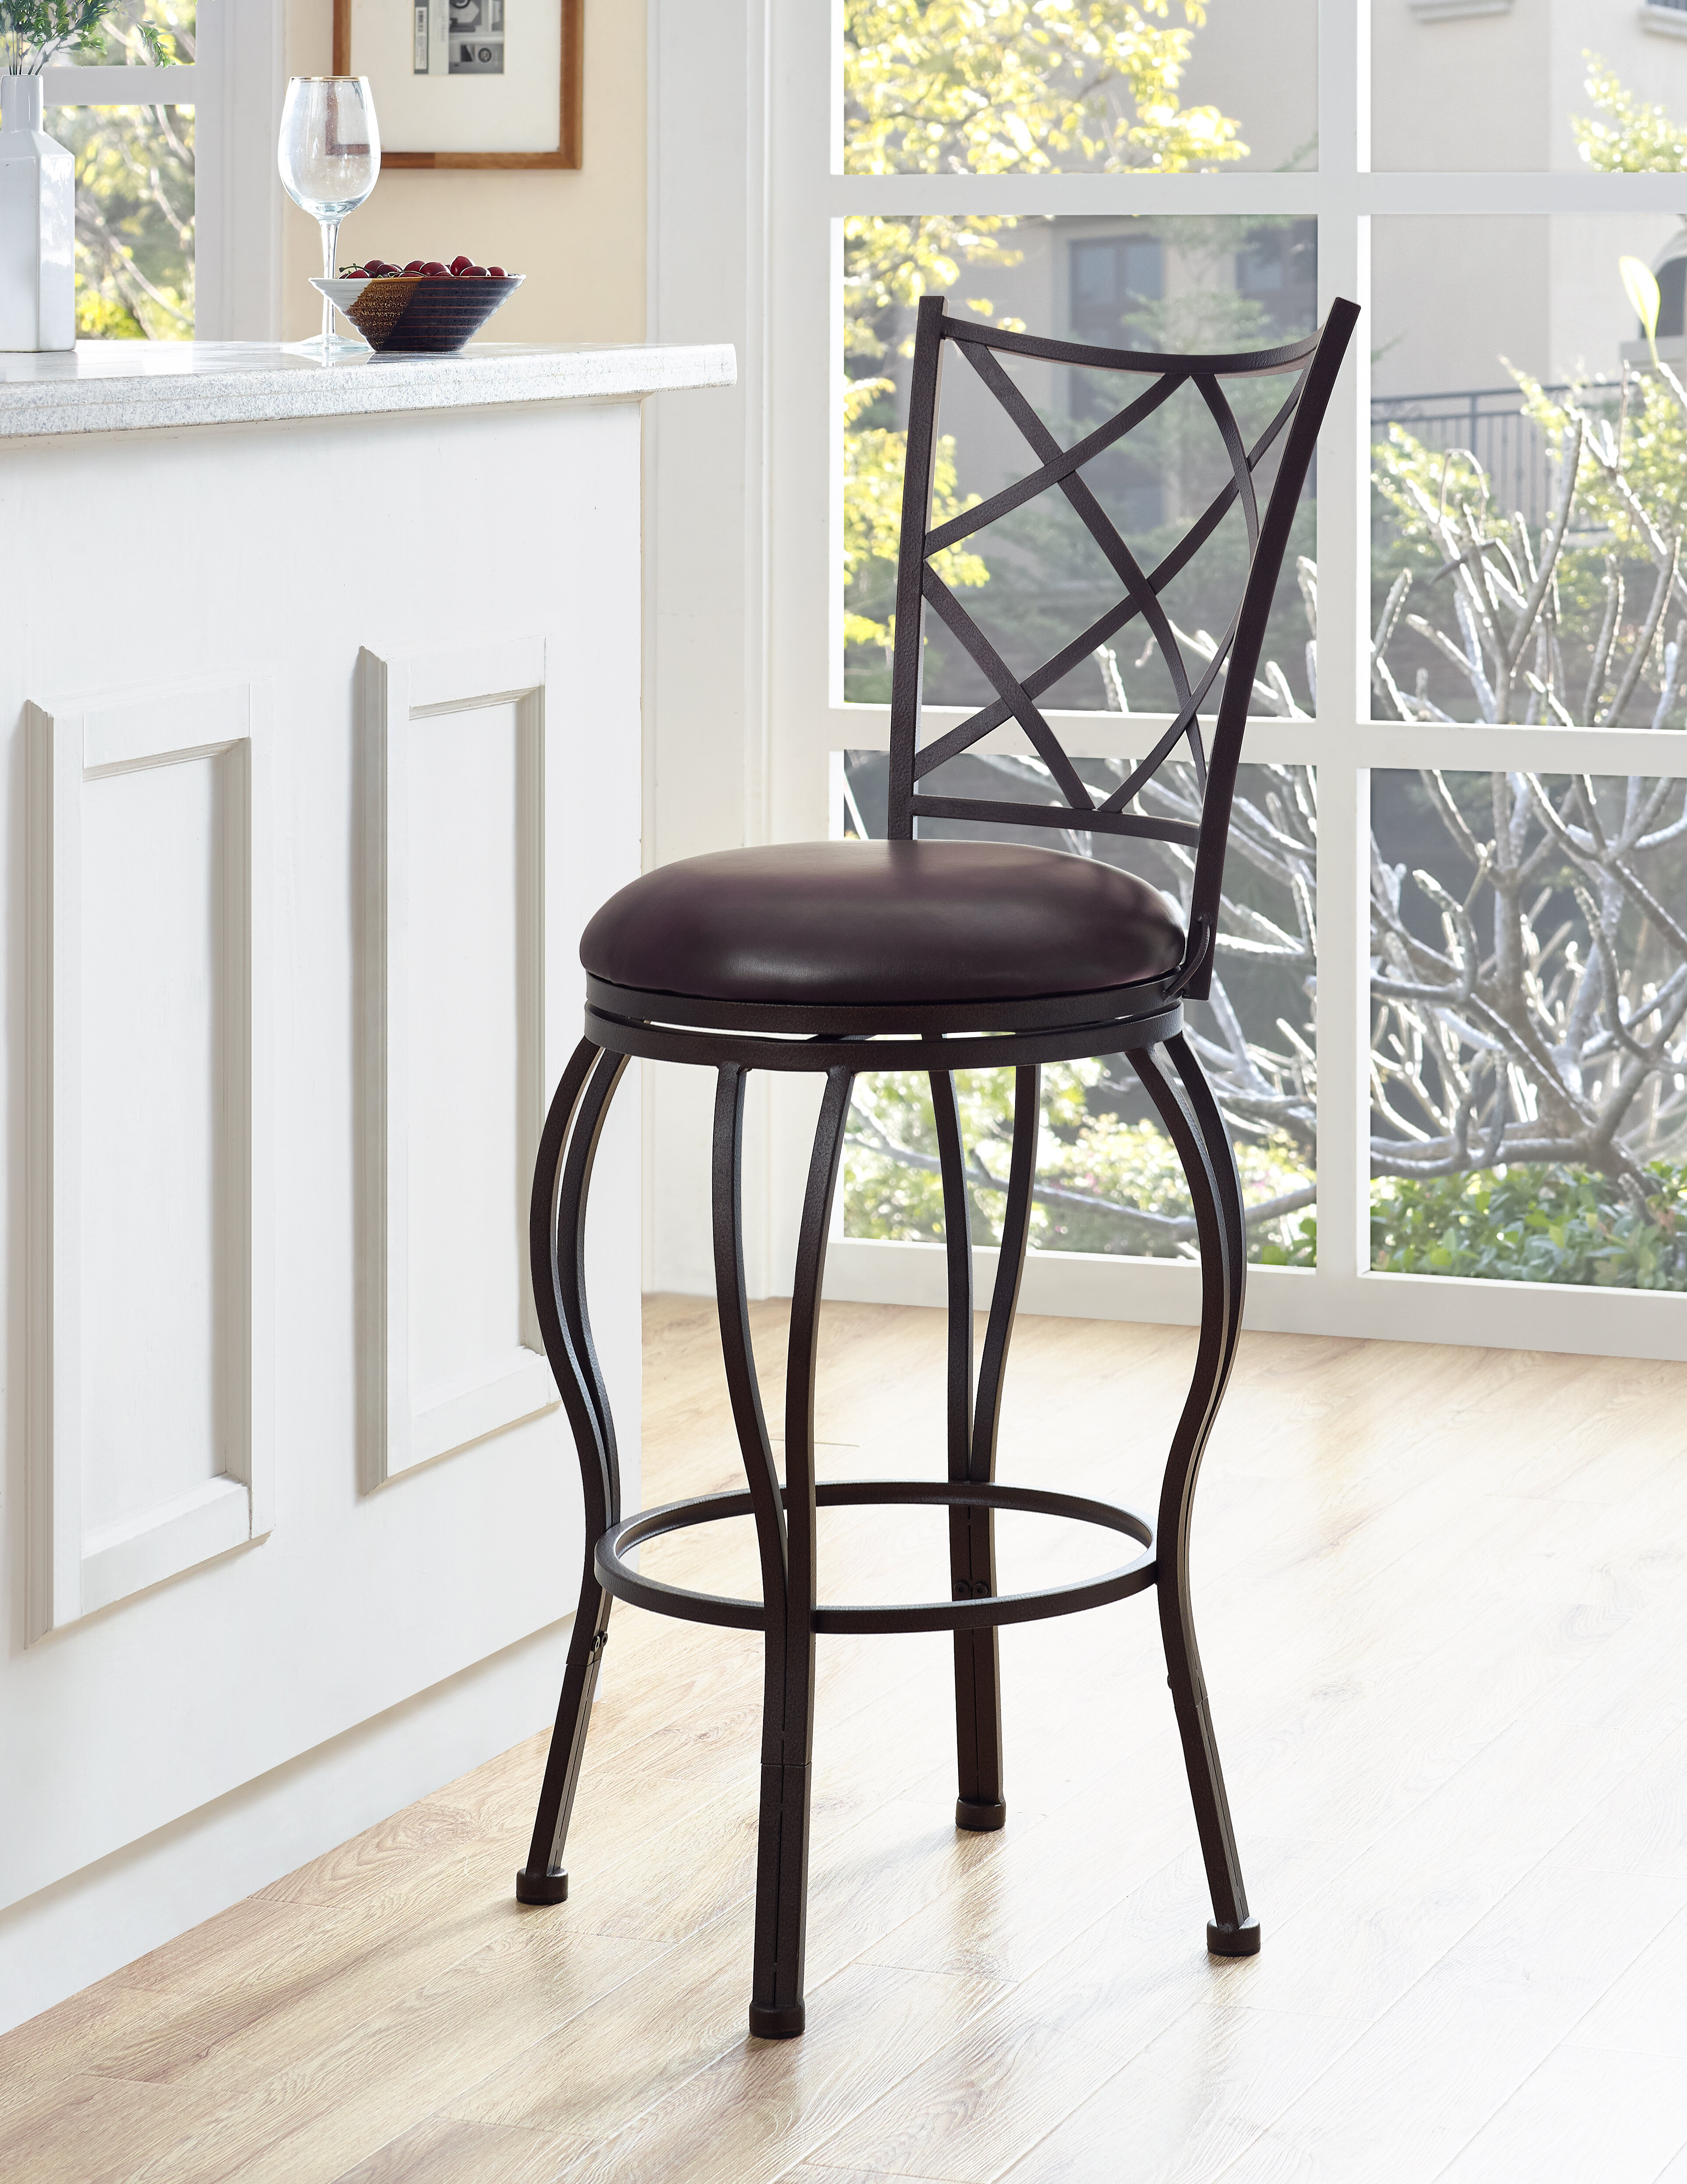 Phenomenal Soperton Diamond Lattice Adjustable Height Bar Stool Gmtry Best Dining Table And Chair Ideas Images Gmtryco